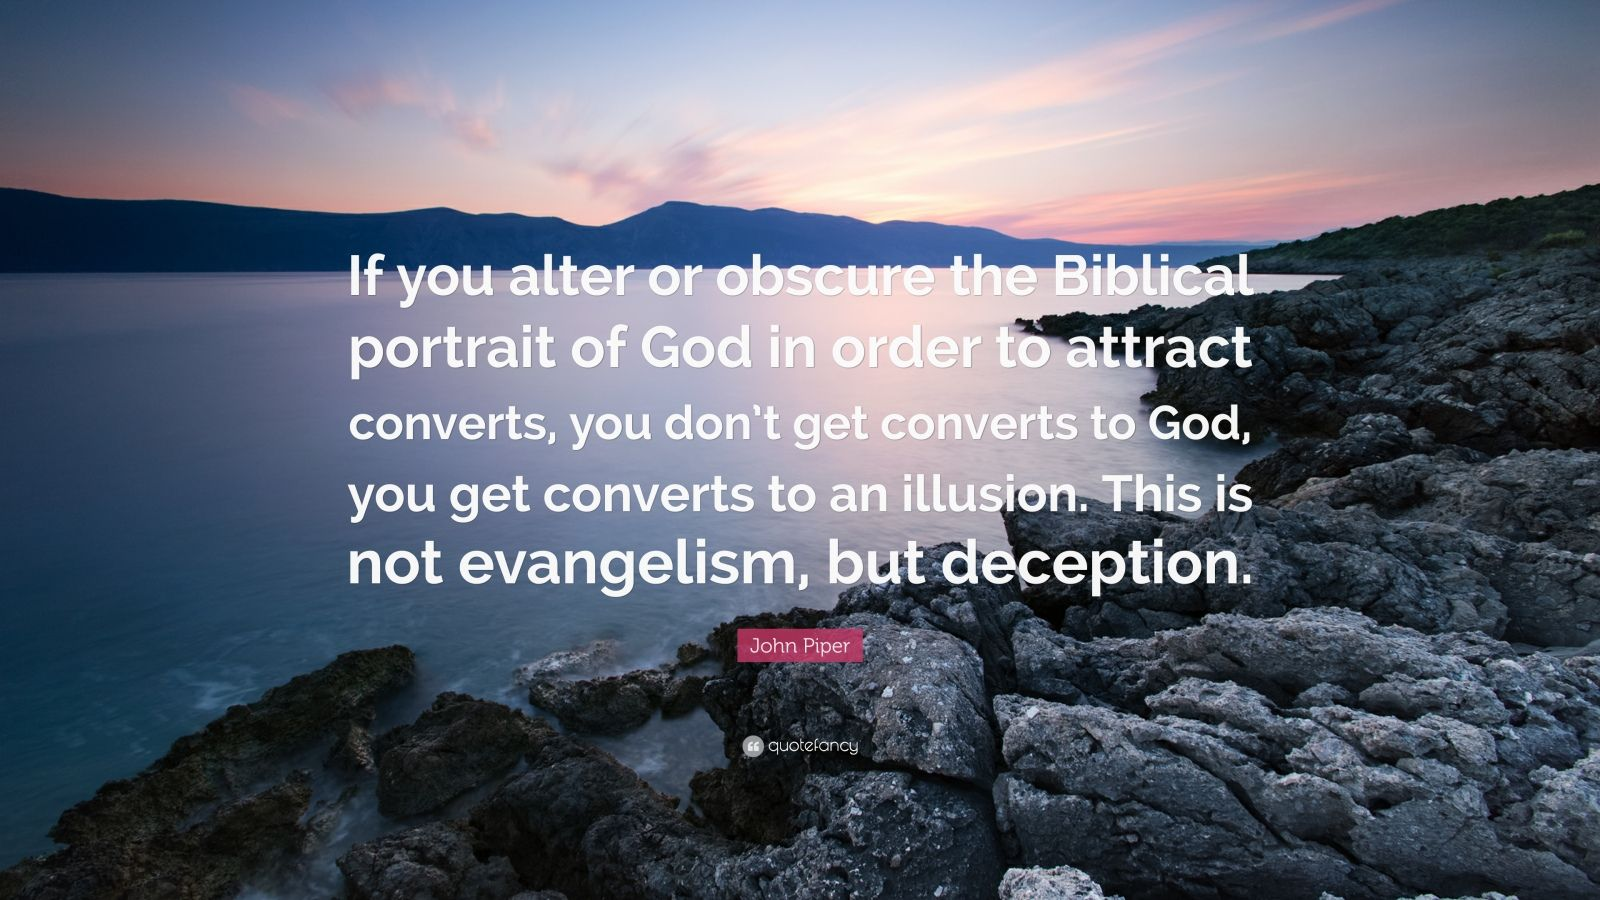 """John Piper Quote: """"If you alter or obscure the Biblical portrait of God in order to attract converts, you don't get converts to God, you get converts to an illusion. This is not evangelism, but deception."""""""